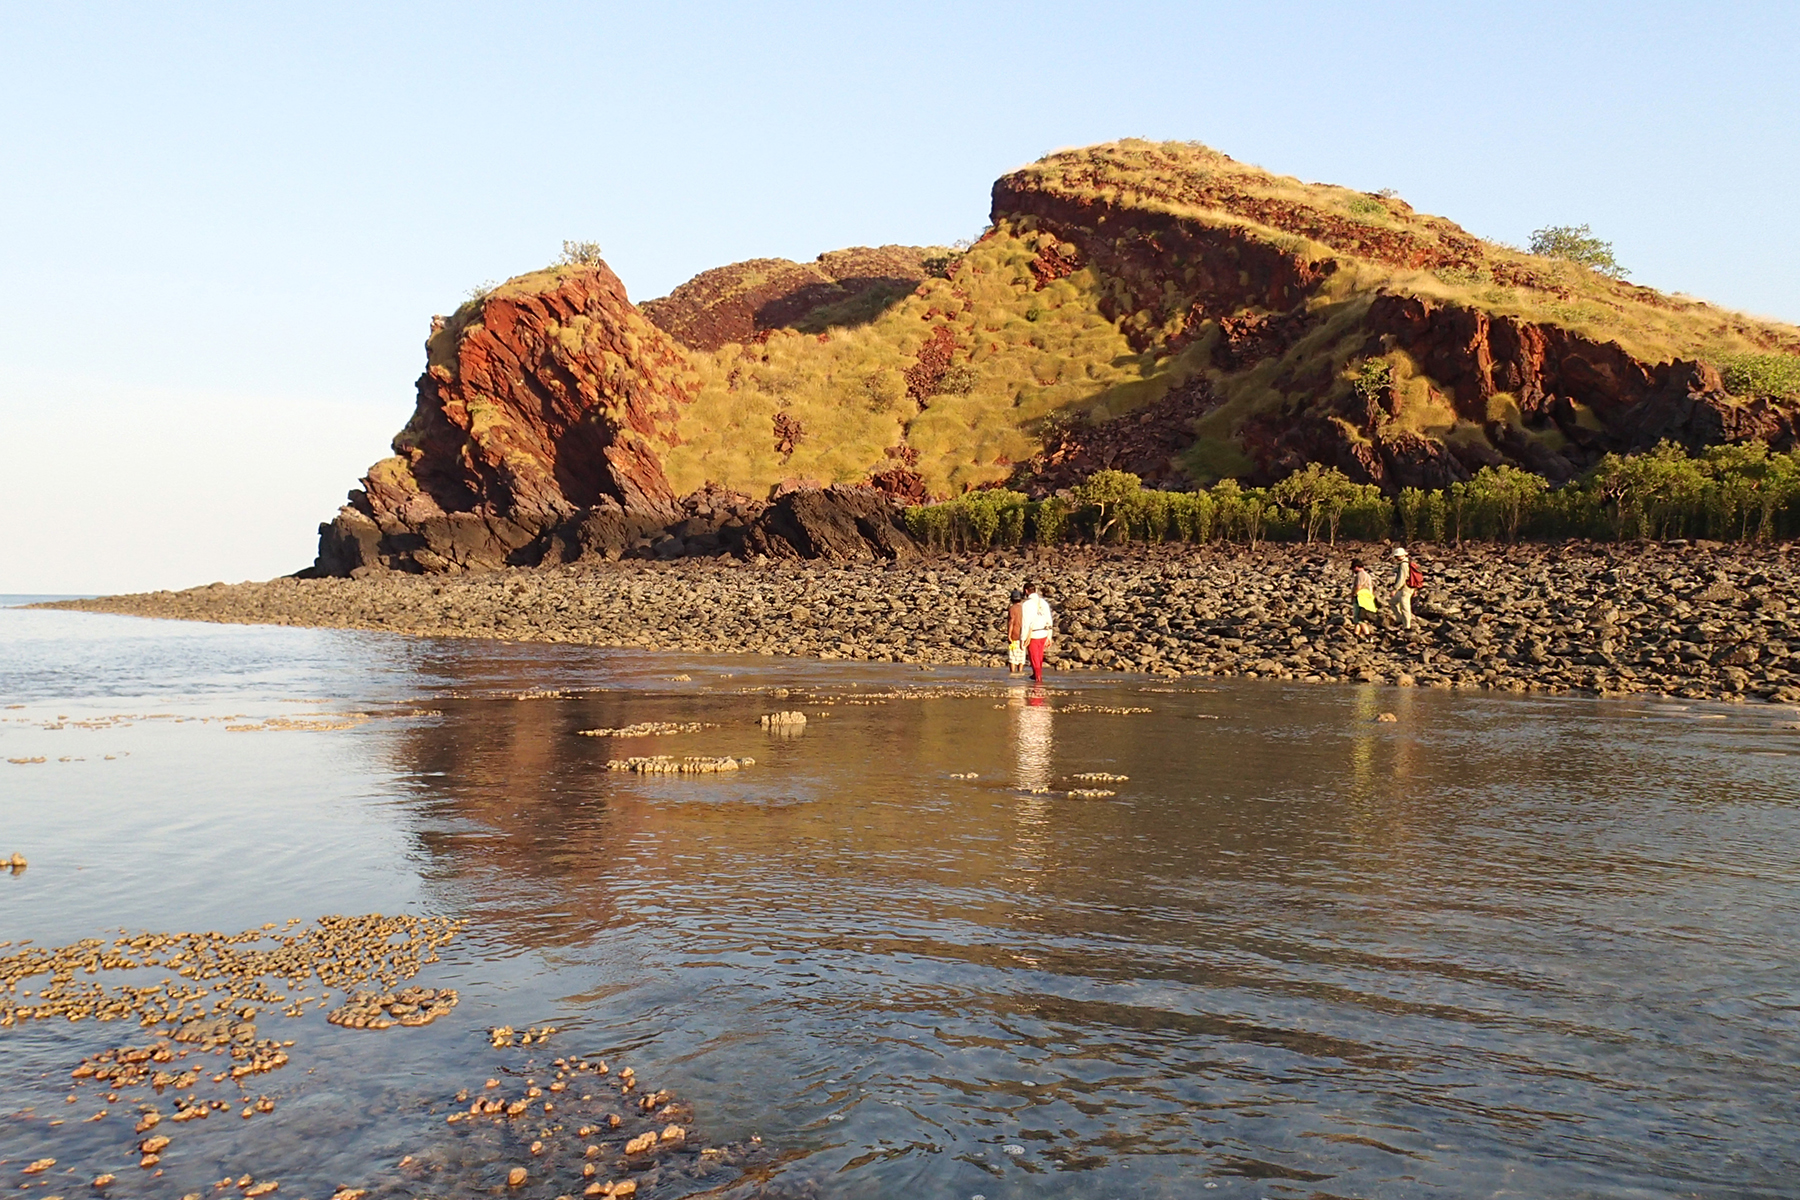 People wade through shallow water infront of a rocky mound